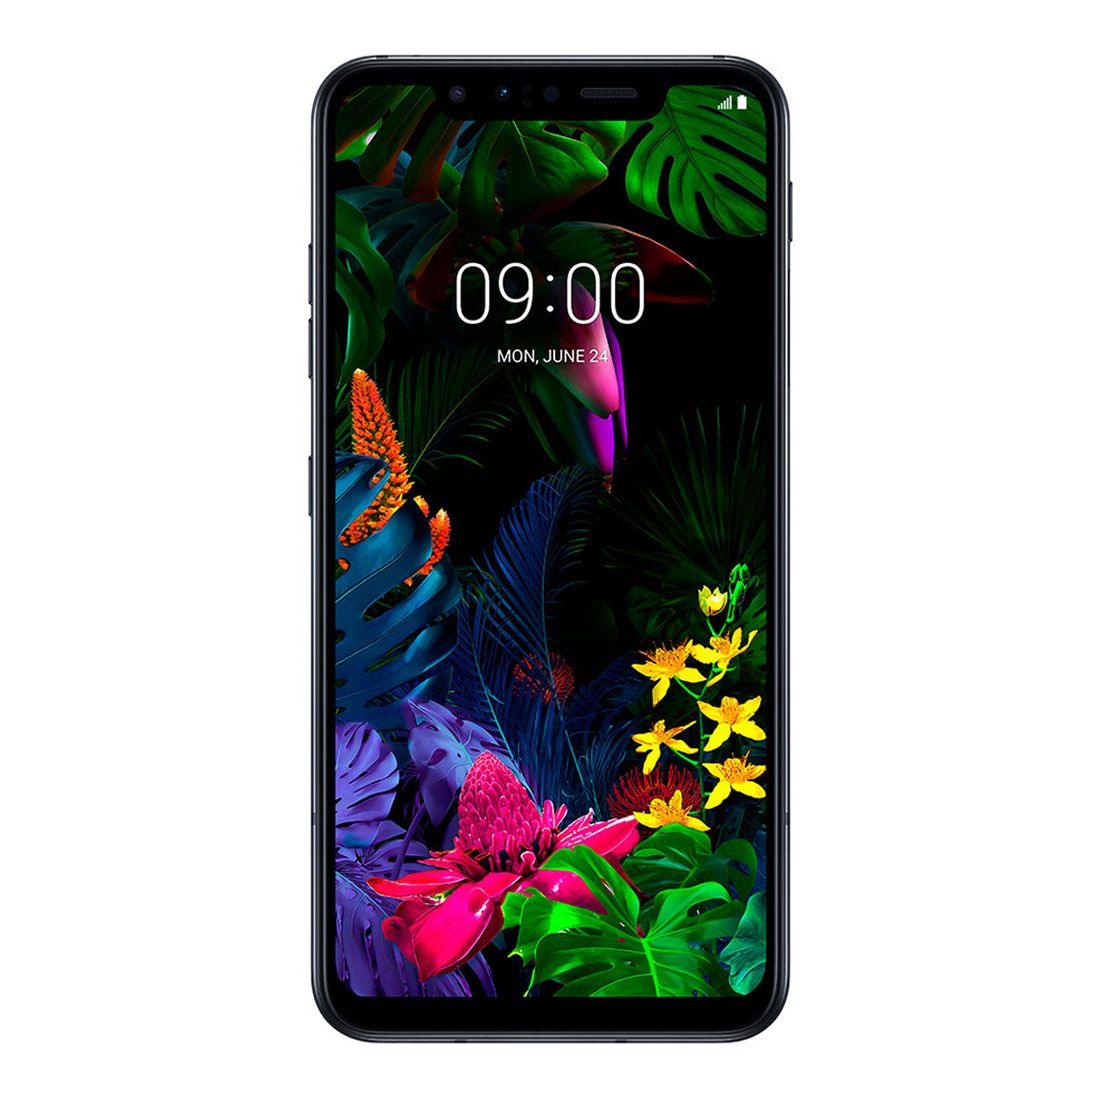 LG G8s ThinQ (Dual Sim 4G/4G, 128GB/6GB) - Mirror Teal